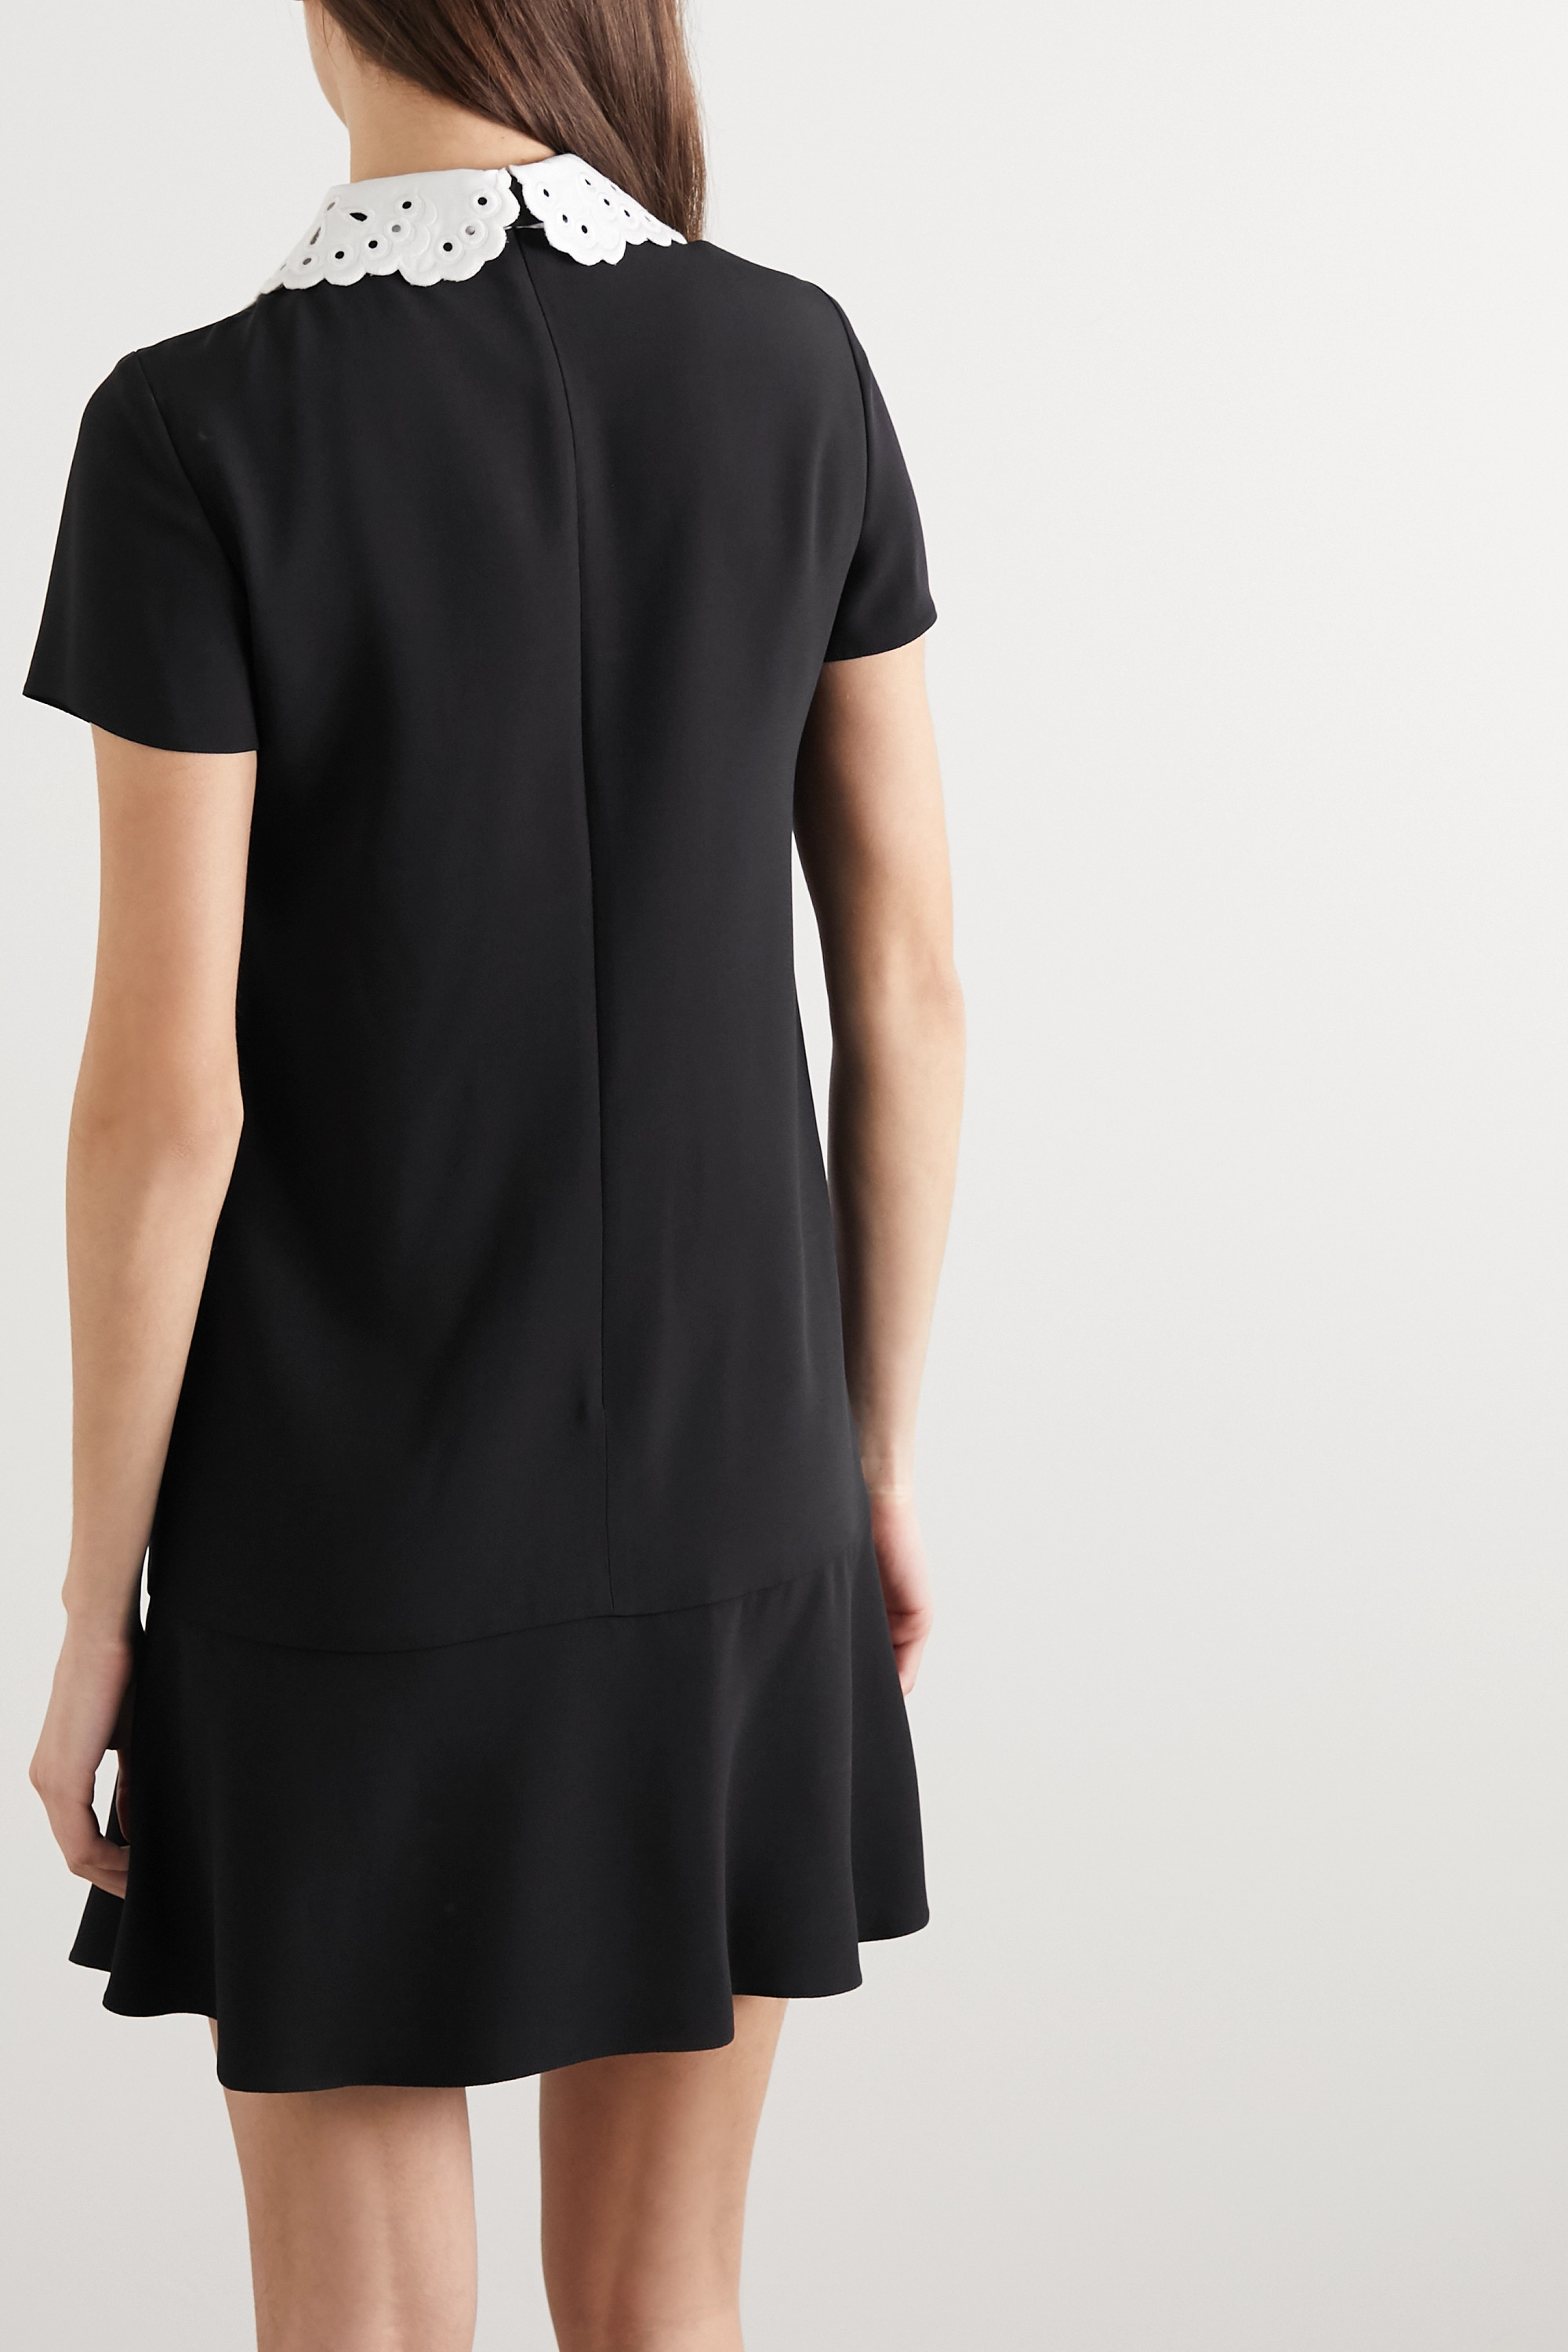 REDValentino Broderie anglaise-trimmed crepe mini dress